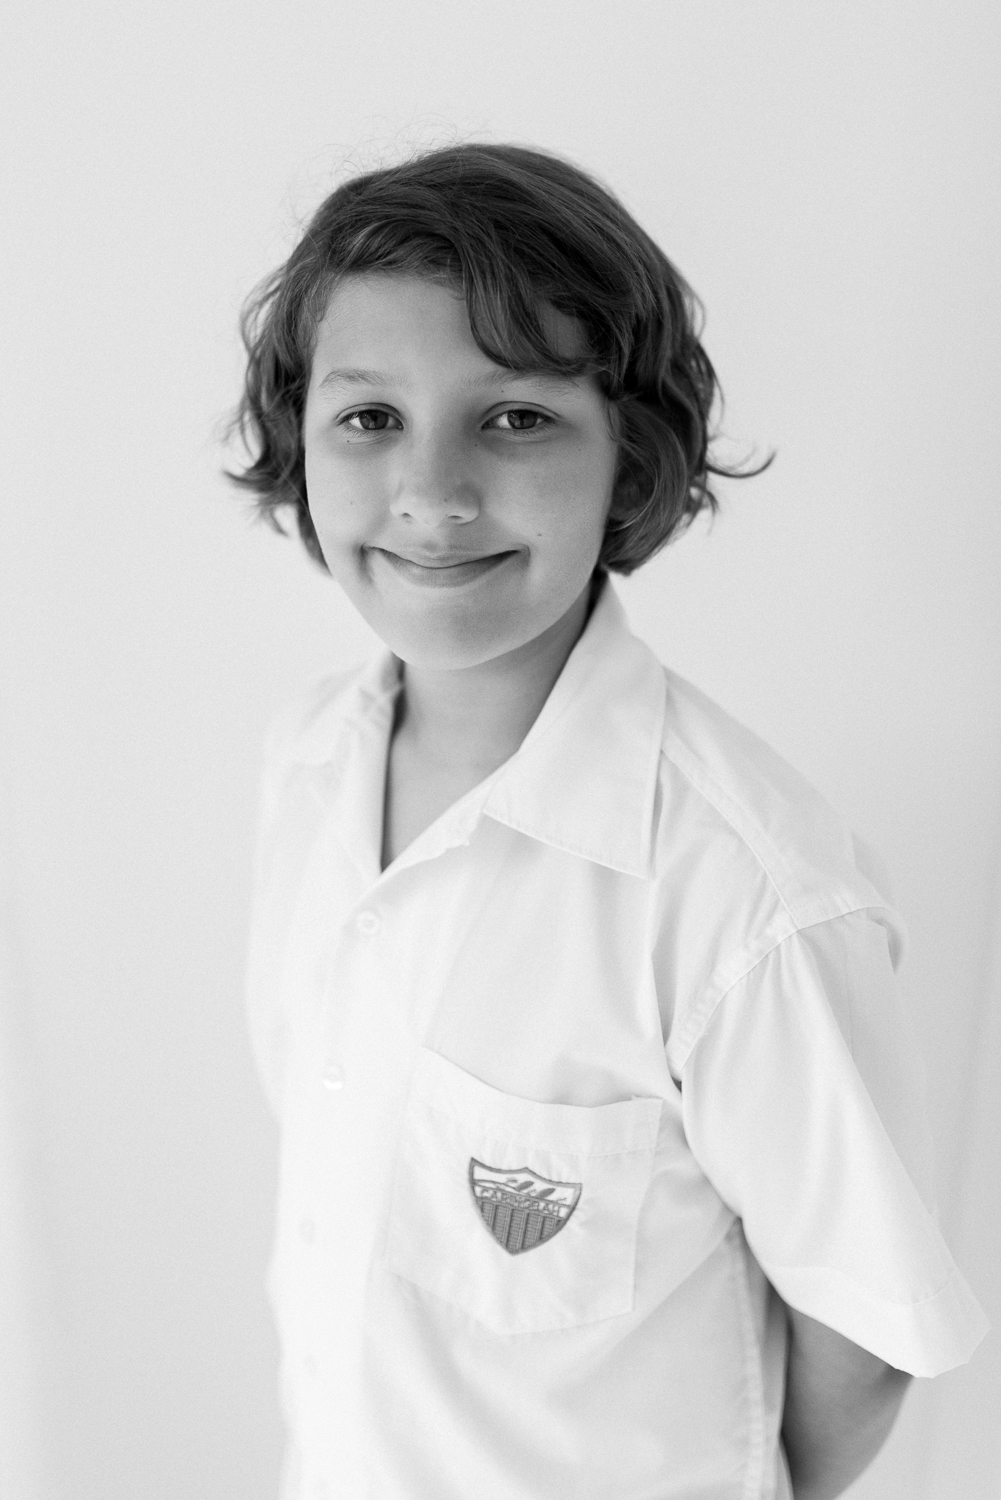 Black and white image of young boy smiling at camera in crisp white shirt ready for first day at selective high school NSW photographed in natural light children's photography studio in Sutherland Shire Sydney